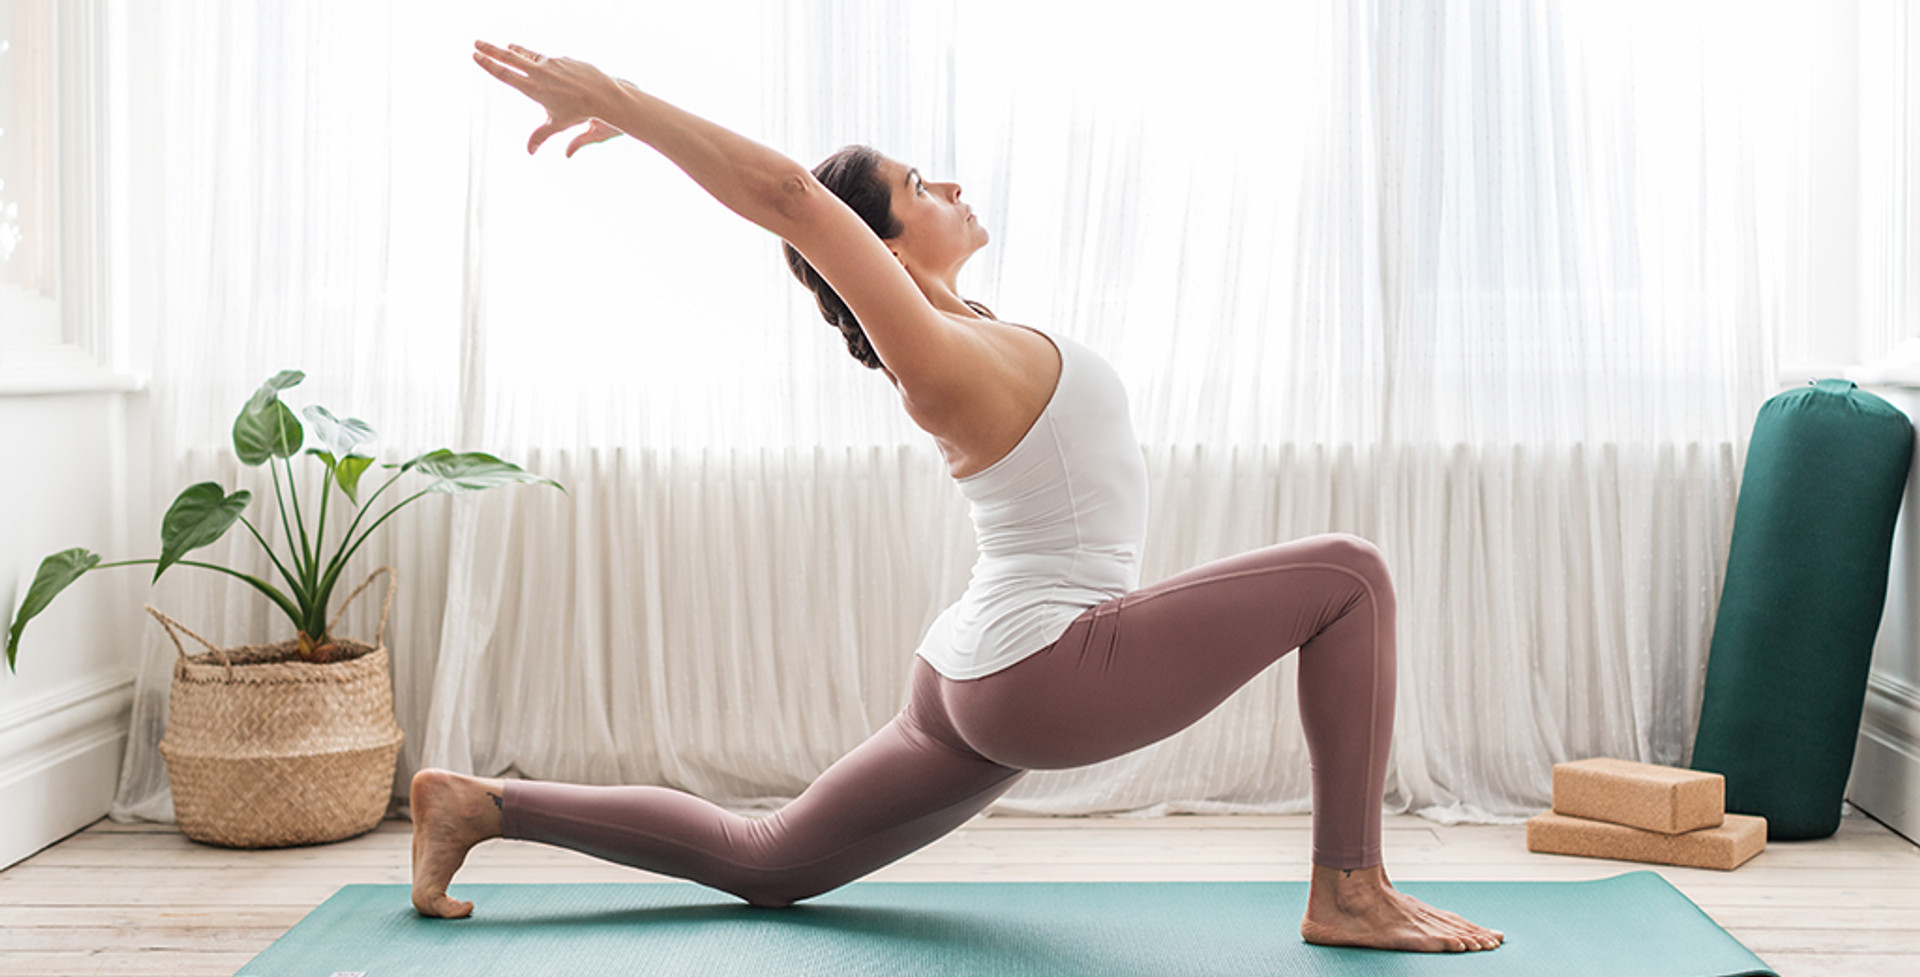 3 Energising Yoga Poses to Get Your Glow